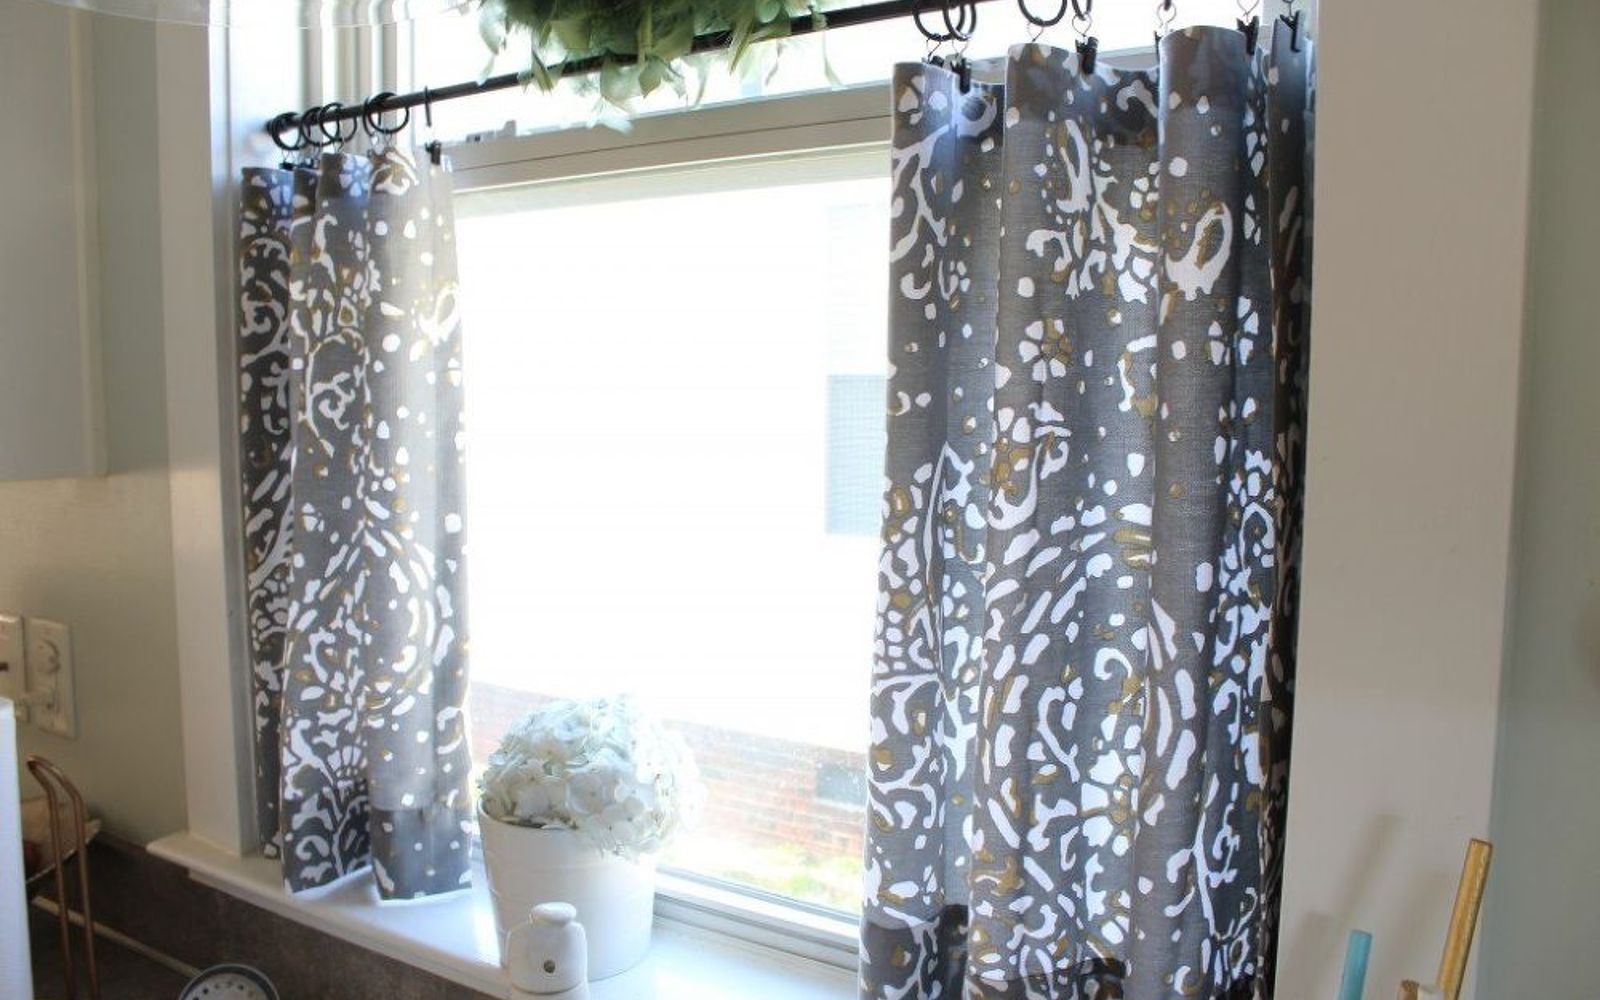 Hometalk diy drop cloth outdoor patio curtains - Home Design 2017 187 Payment24 Us